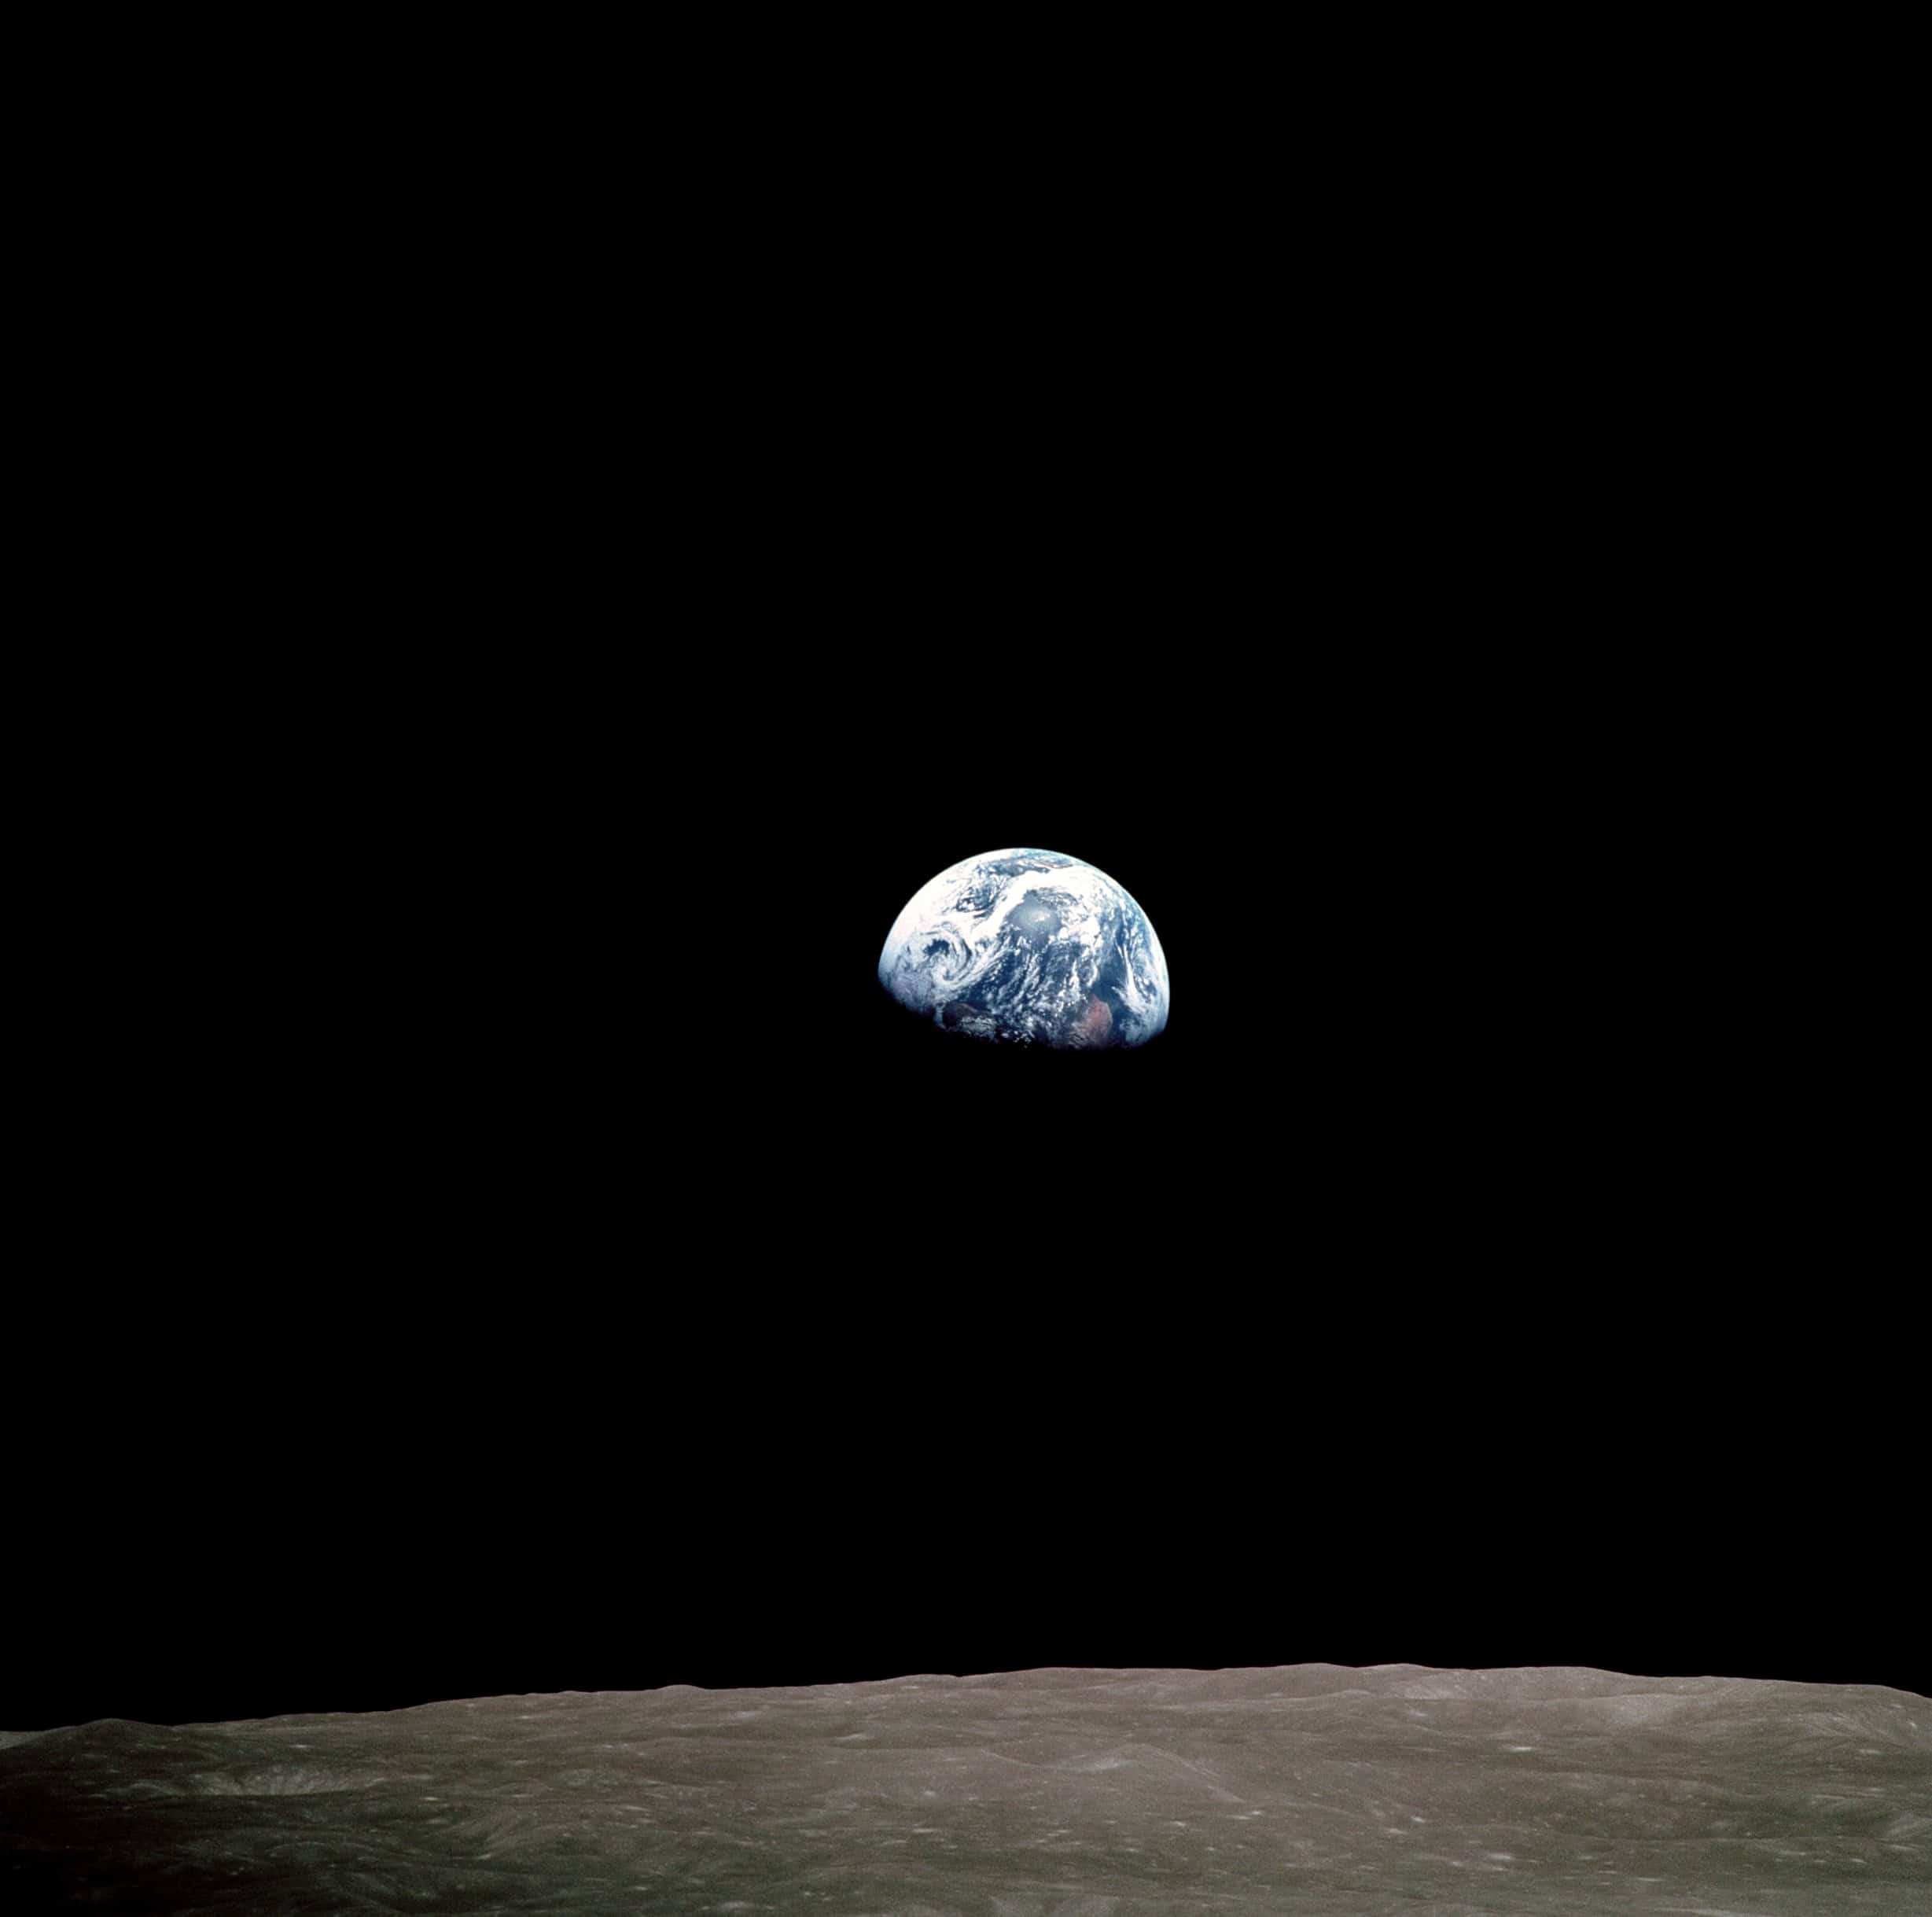 The_crew_of_Apollo_8_were_the_first_humans_to_witness_the_Earth_rising_over_the_Moon's_horizon